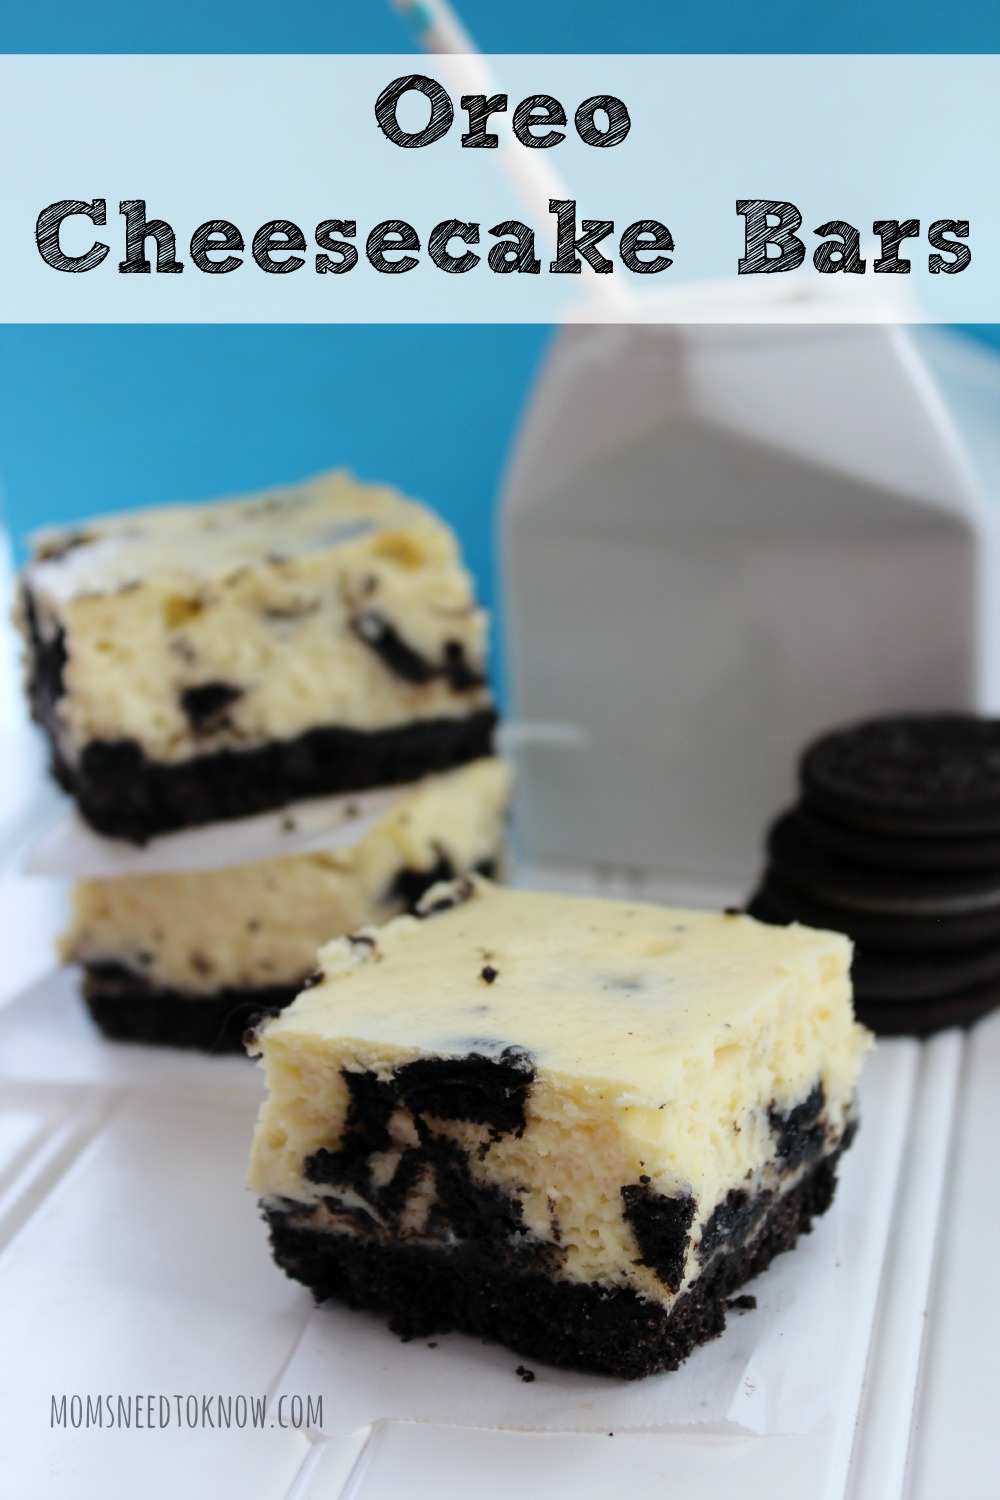 Oreo Cheesecake Bars Recipe | Moms Need To Know ™